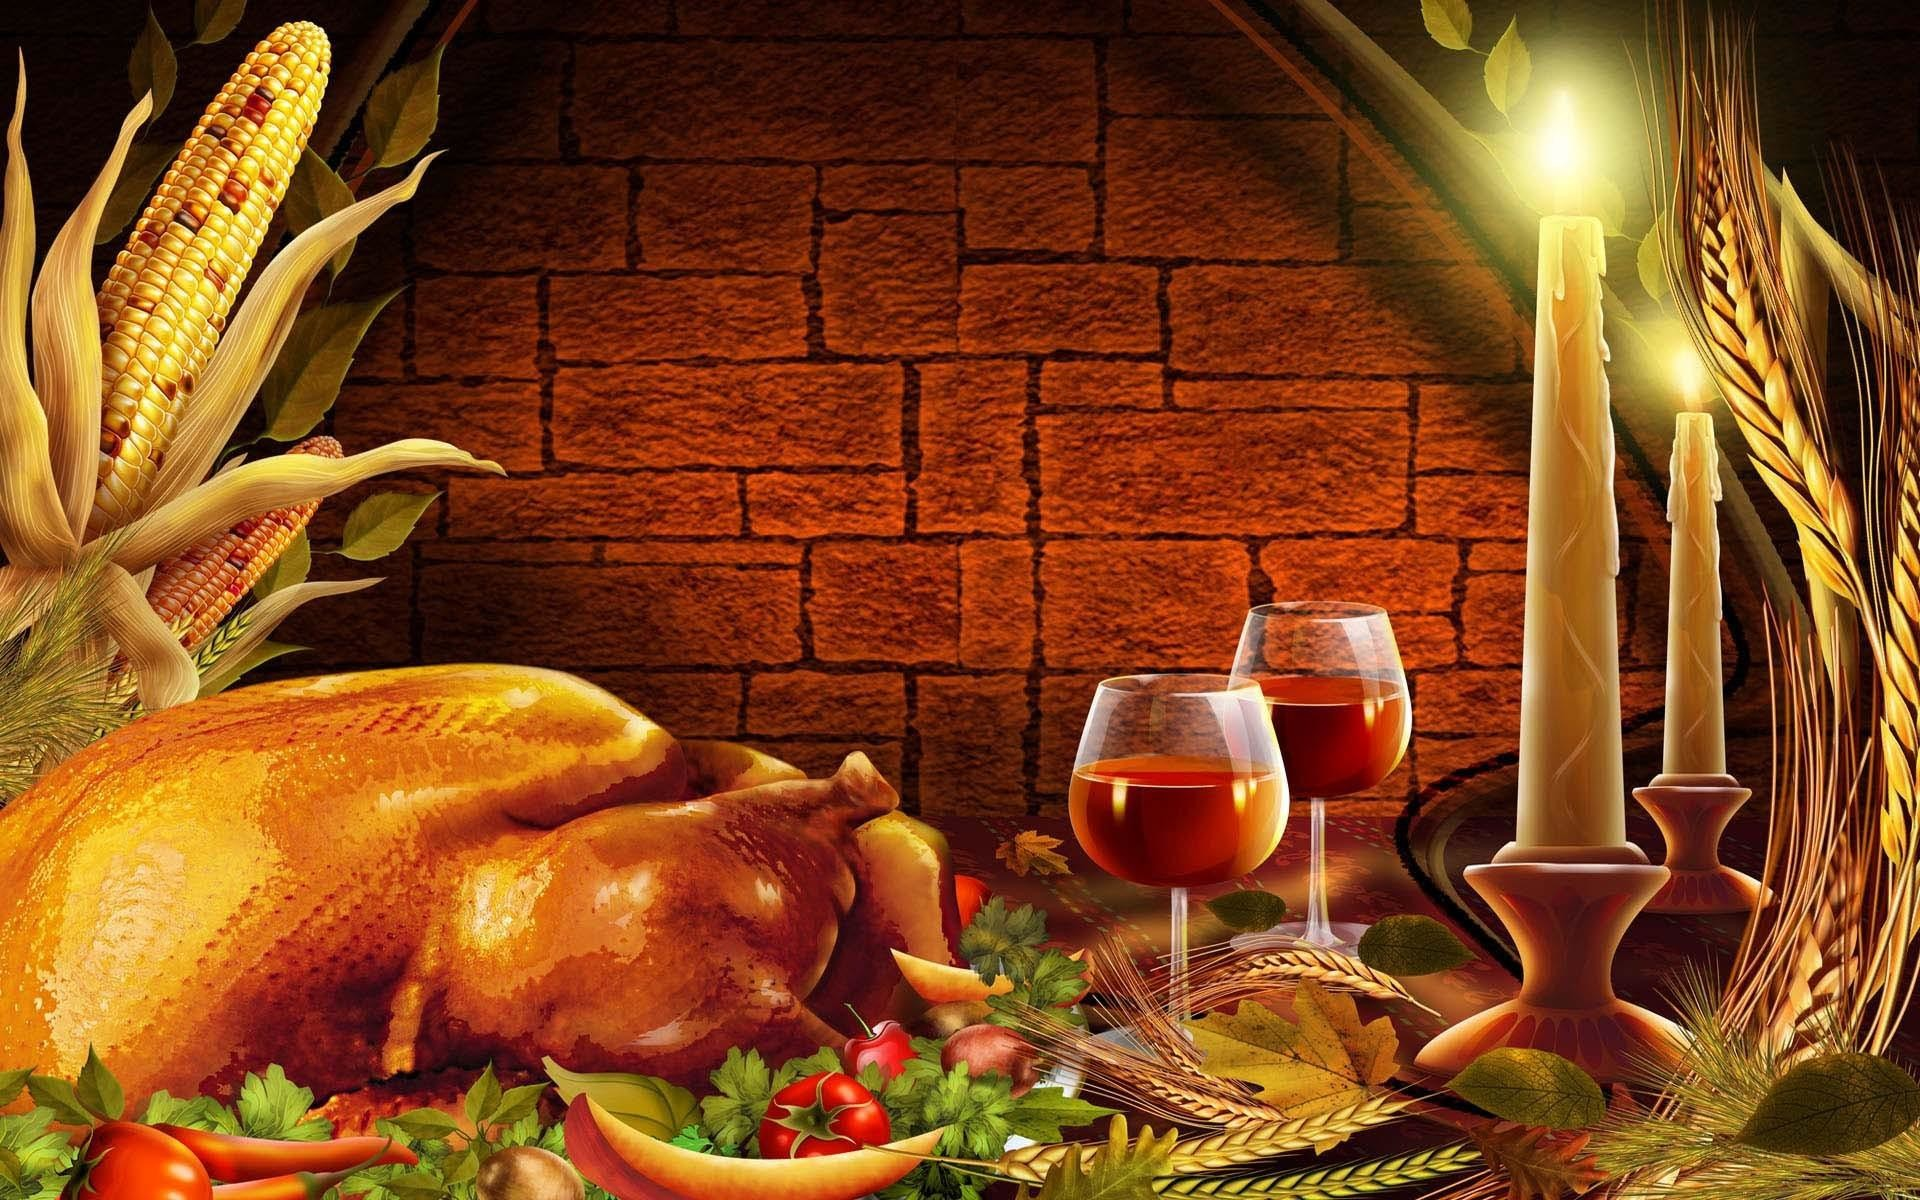 1920x1200 3d thanksgiving photos desktop wallpapers high definition amazing cool best  apple display picture 1920×1200 Wallpaper HD